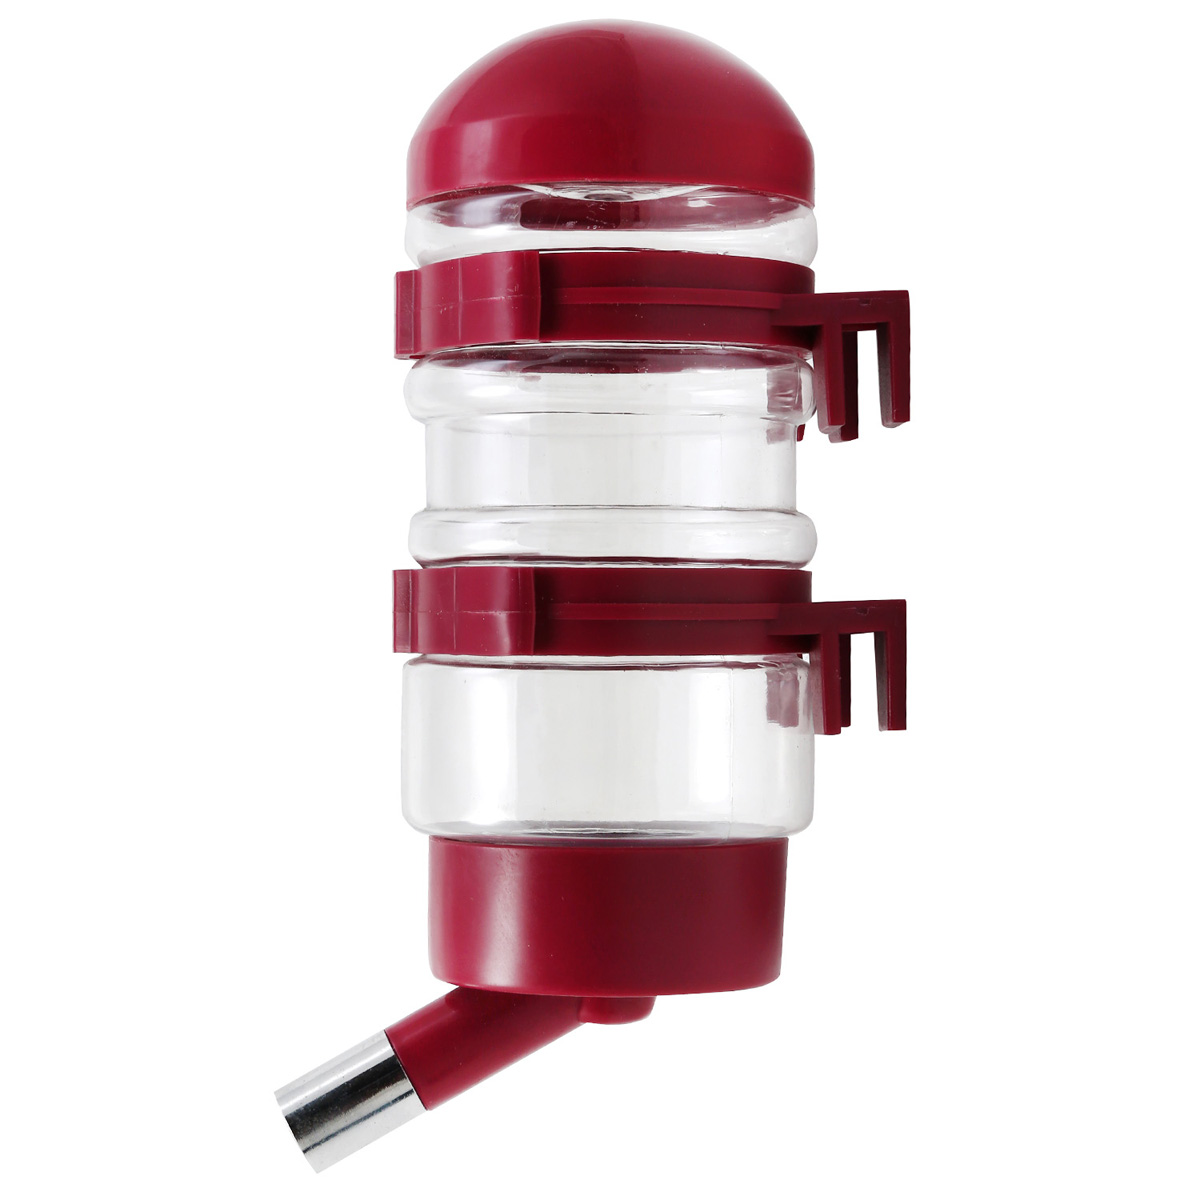 Buy Water Nozzle Drinker Water Feeder,Dog Water Feeder,Puppy Nozzle Feederin low price online at Petindiaonline